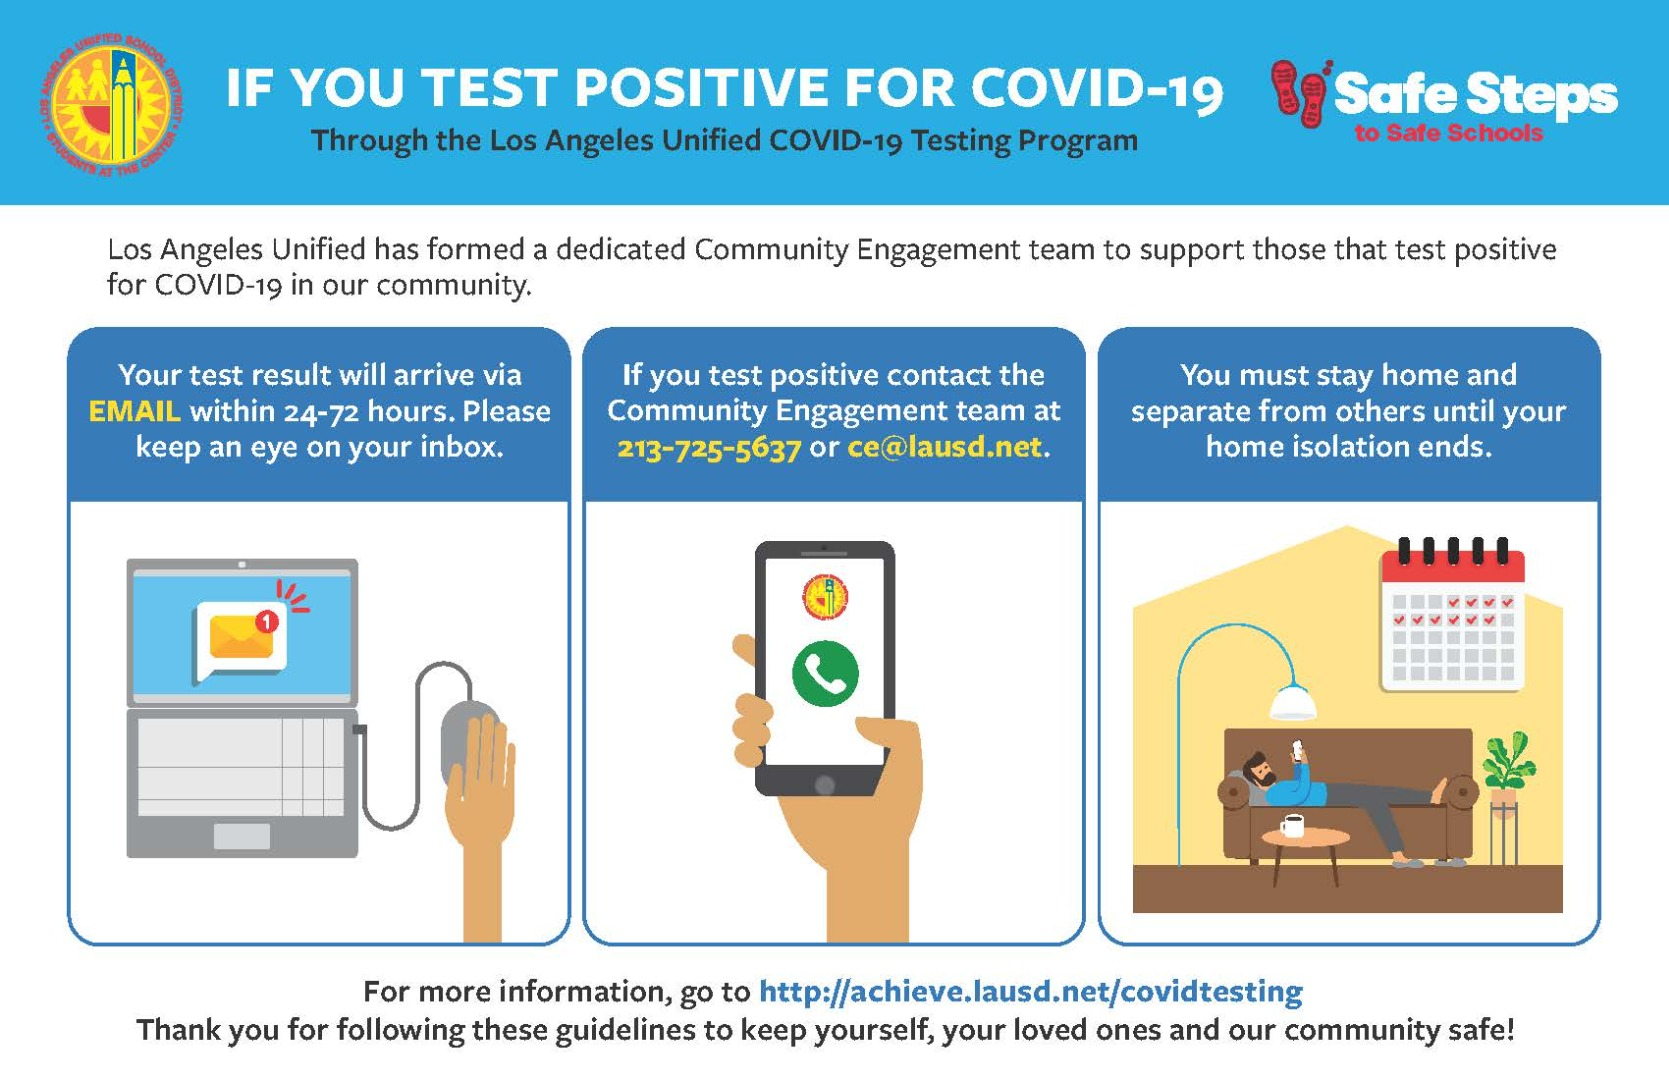 if you test positive for covid instrctions